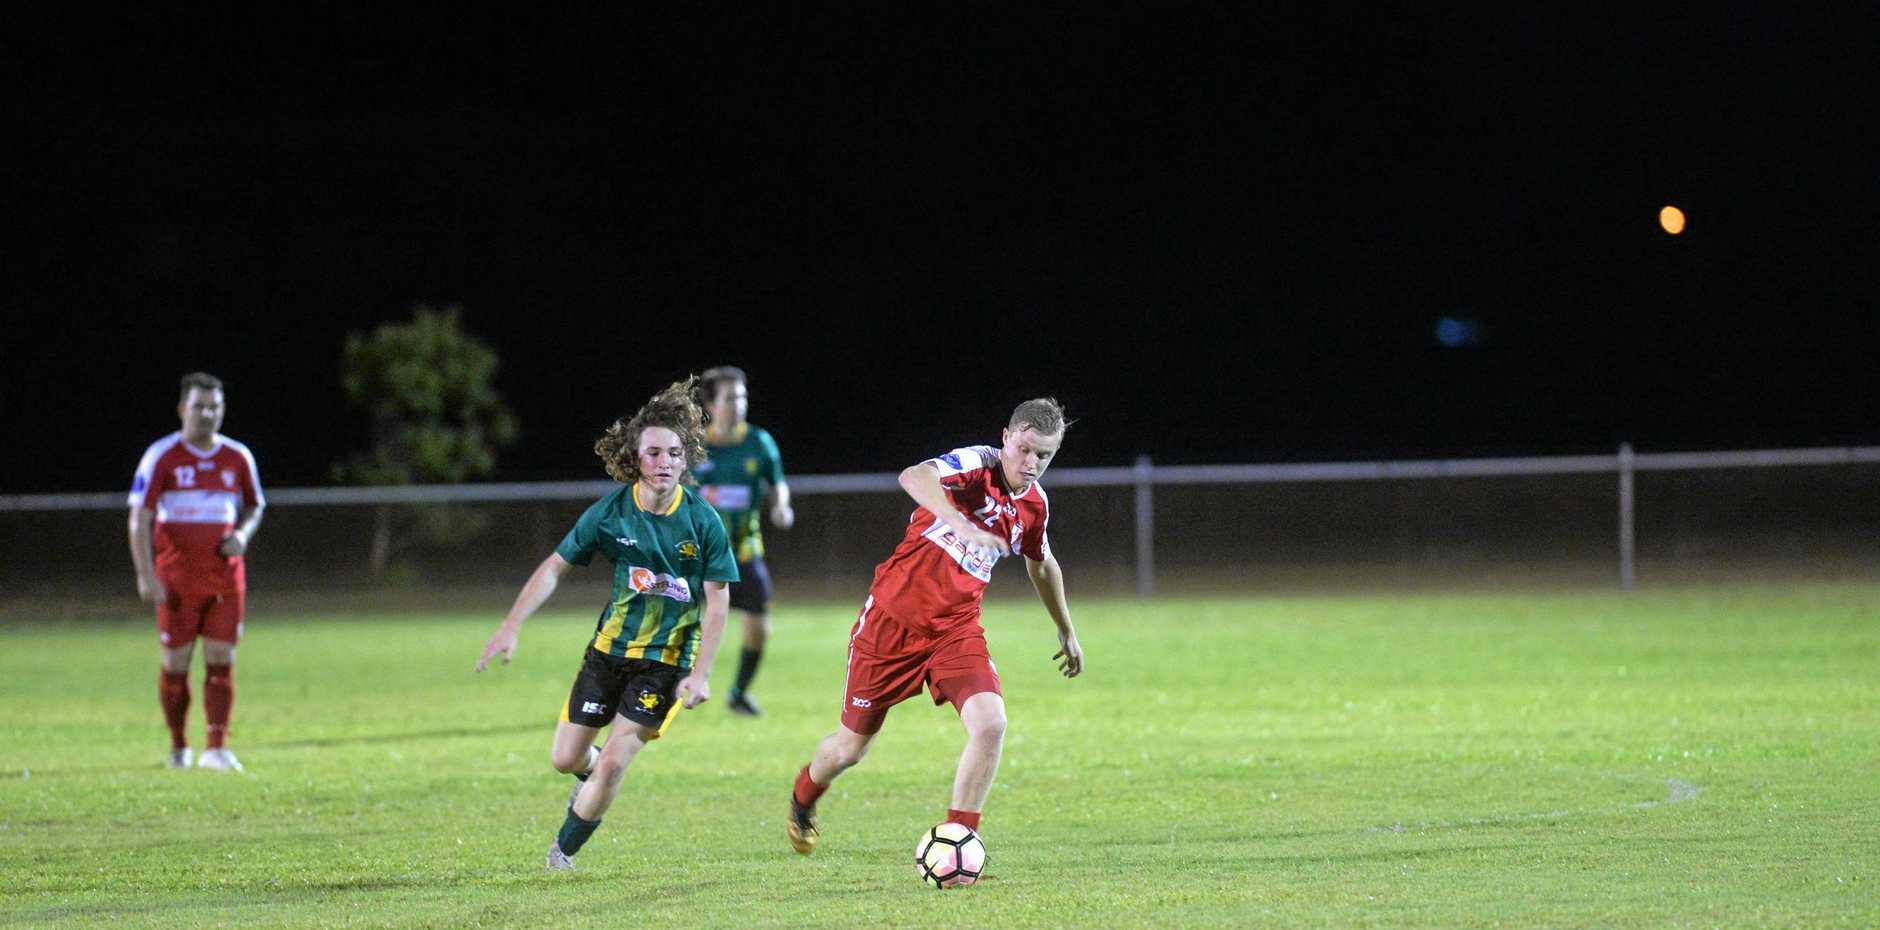 A STEP AHEAD: Wanderers' player Ryan Patton escapes Lions' Liam Carey in Round one of the FFA Cup at Wanderers Park.